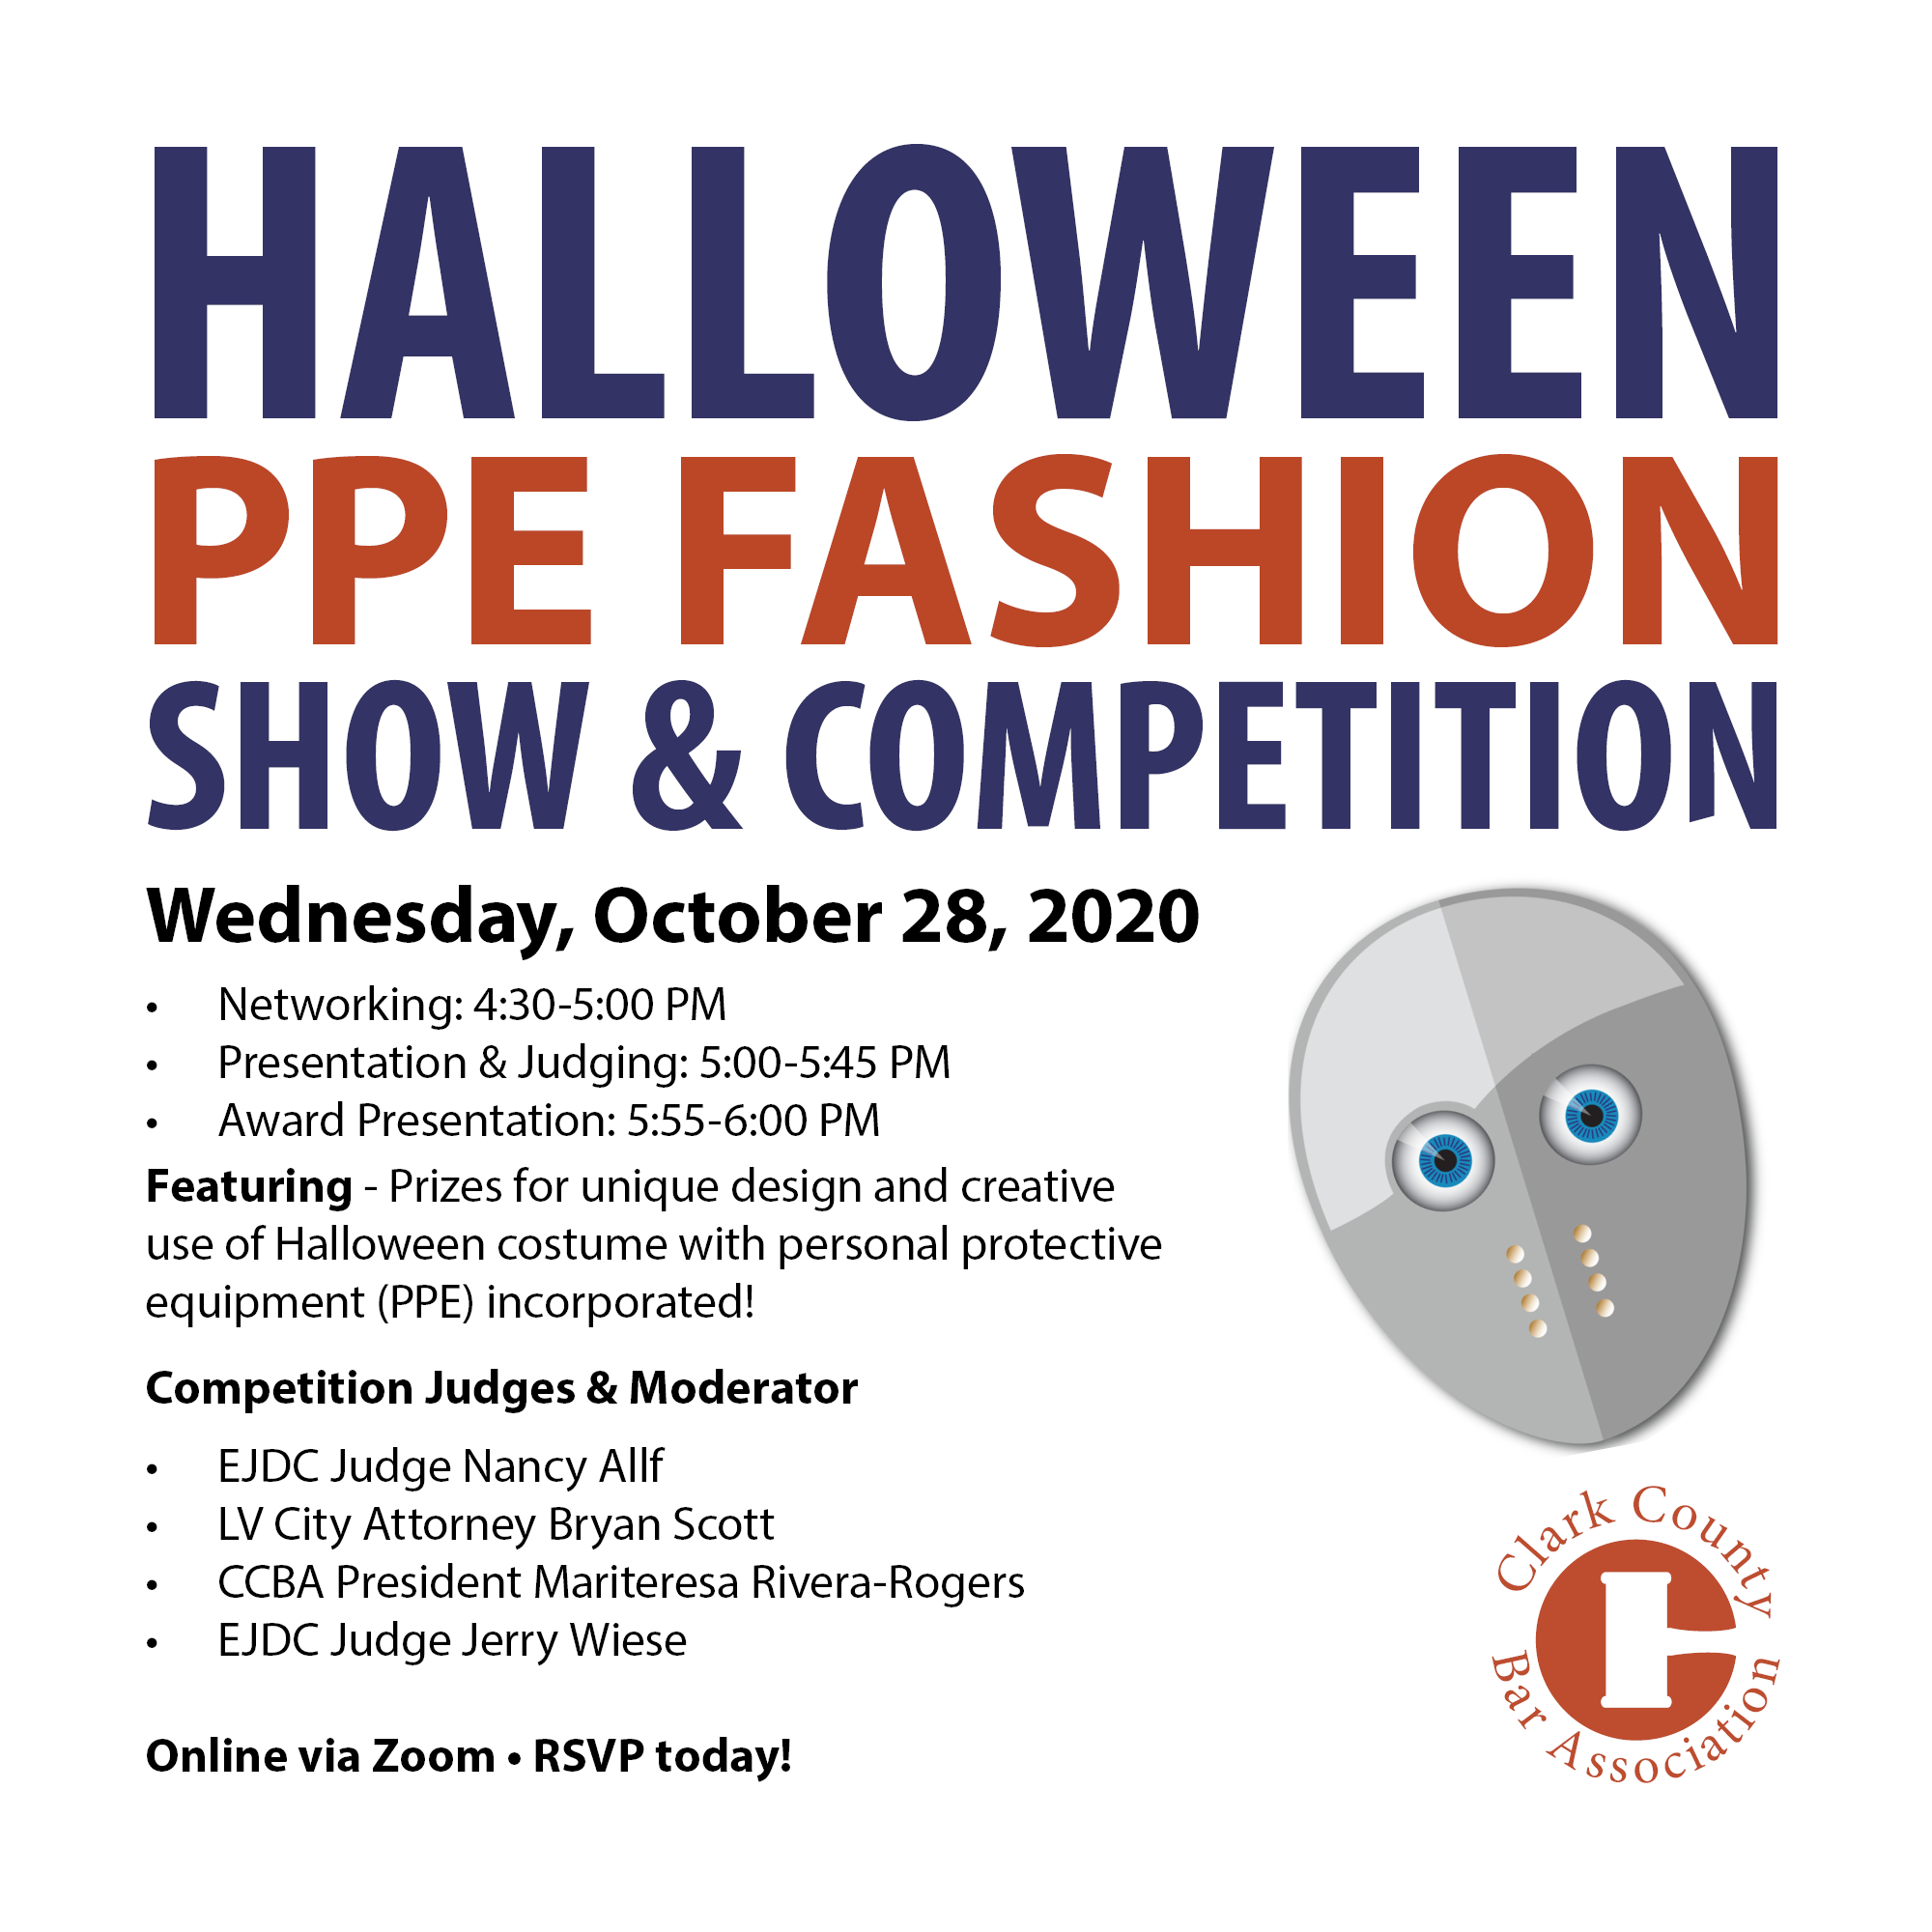 Halloween Events October 28 2020 Halloween PPE Fashion Show & Competition – Clark County Bar